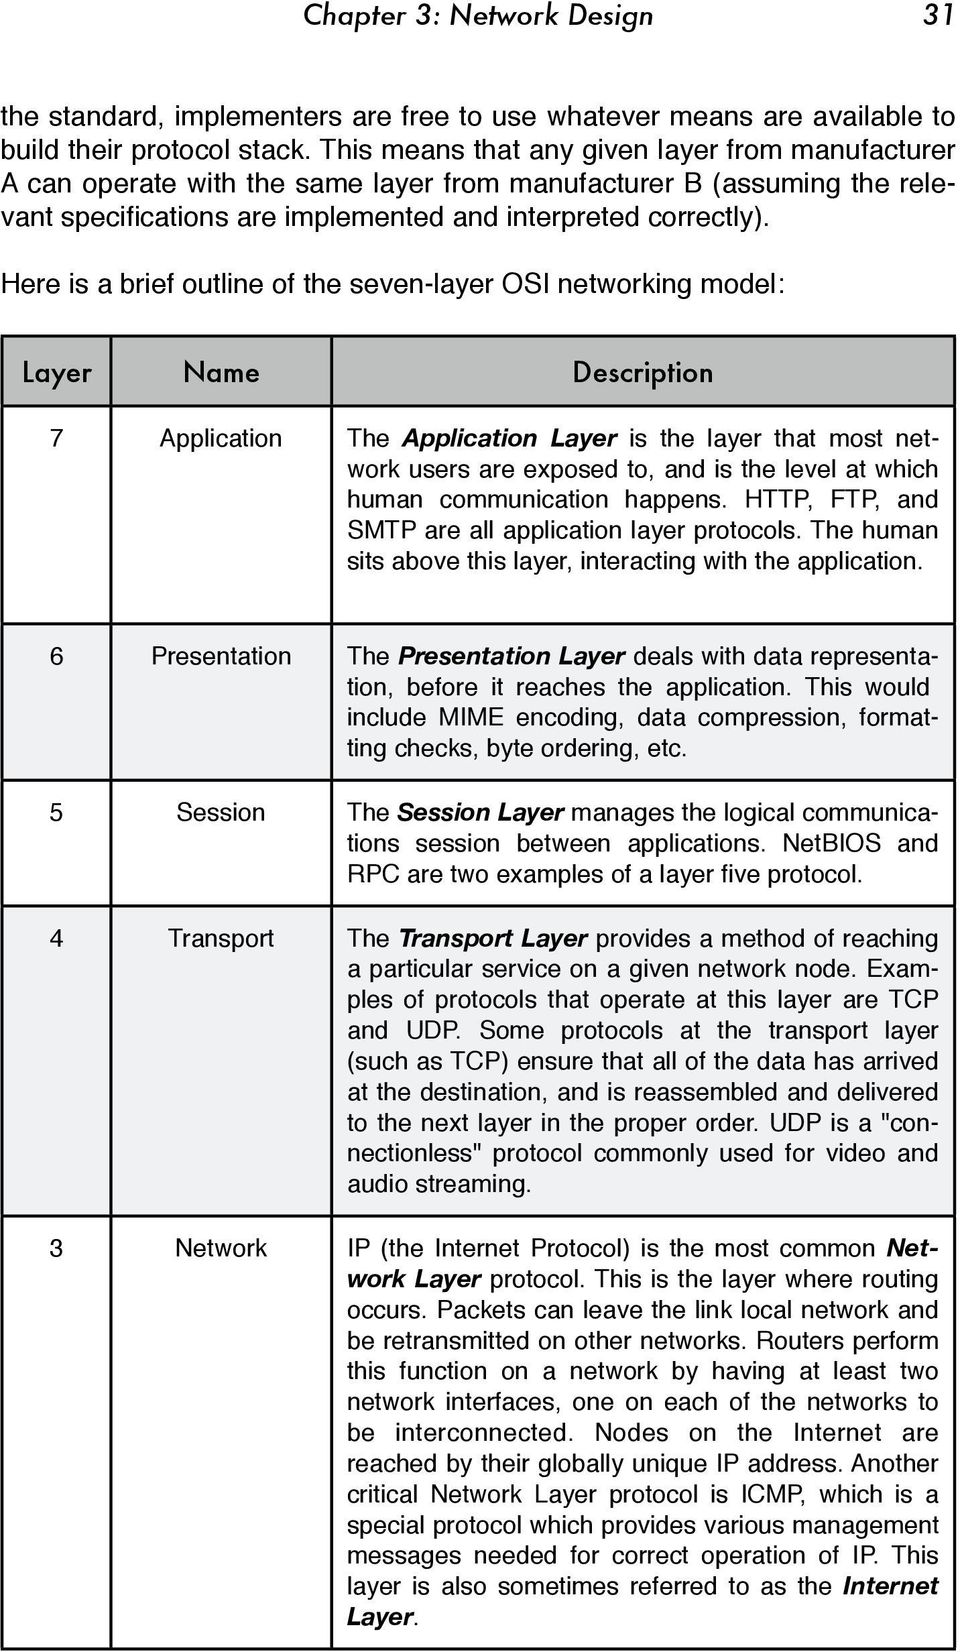 Here is a brief outline of the seven-layer OSI networking model: Layer Name Description 7 Application The Application Layer is the layer that most network users are exposed to, and is the level at